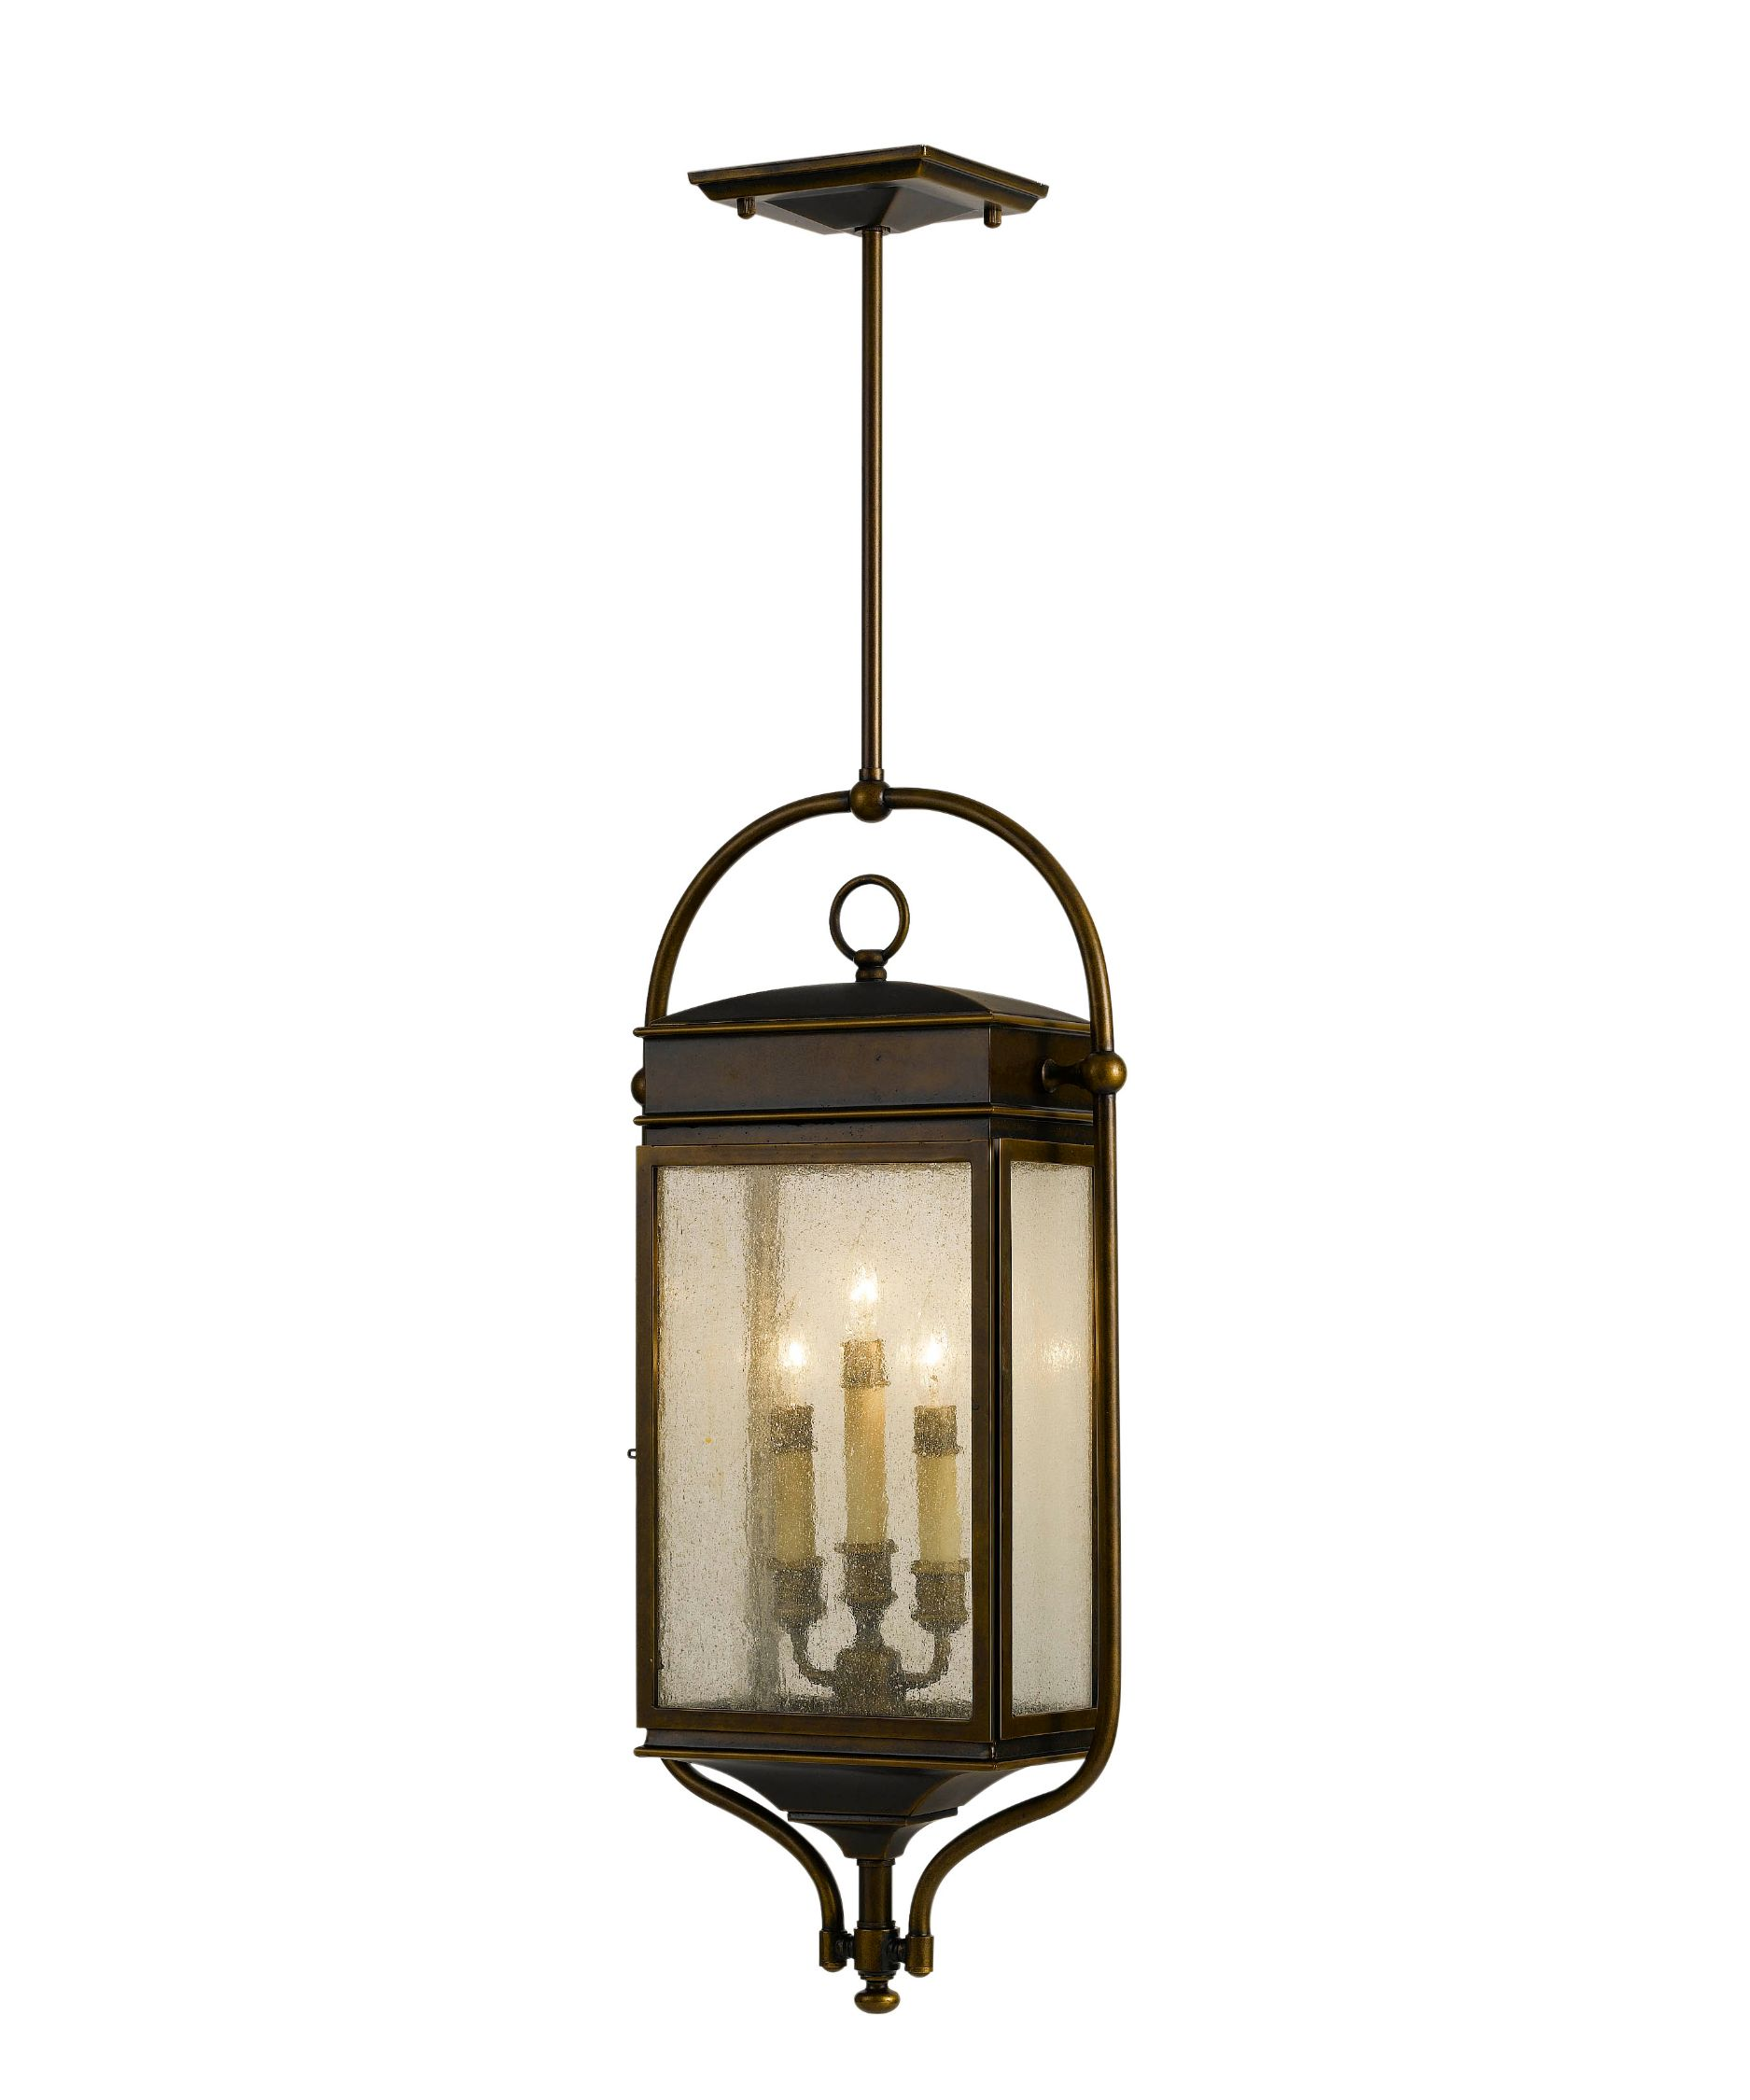 Feiss Whitaker 27 Inch Tall 3 Light Outdoor Hanging Lantern Capitol Lighting Outdoor Hanging Lanterns Outdoor Hanging Lights Outdoor Pendant Lighting